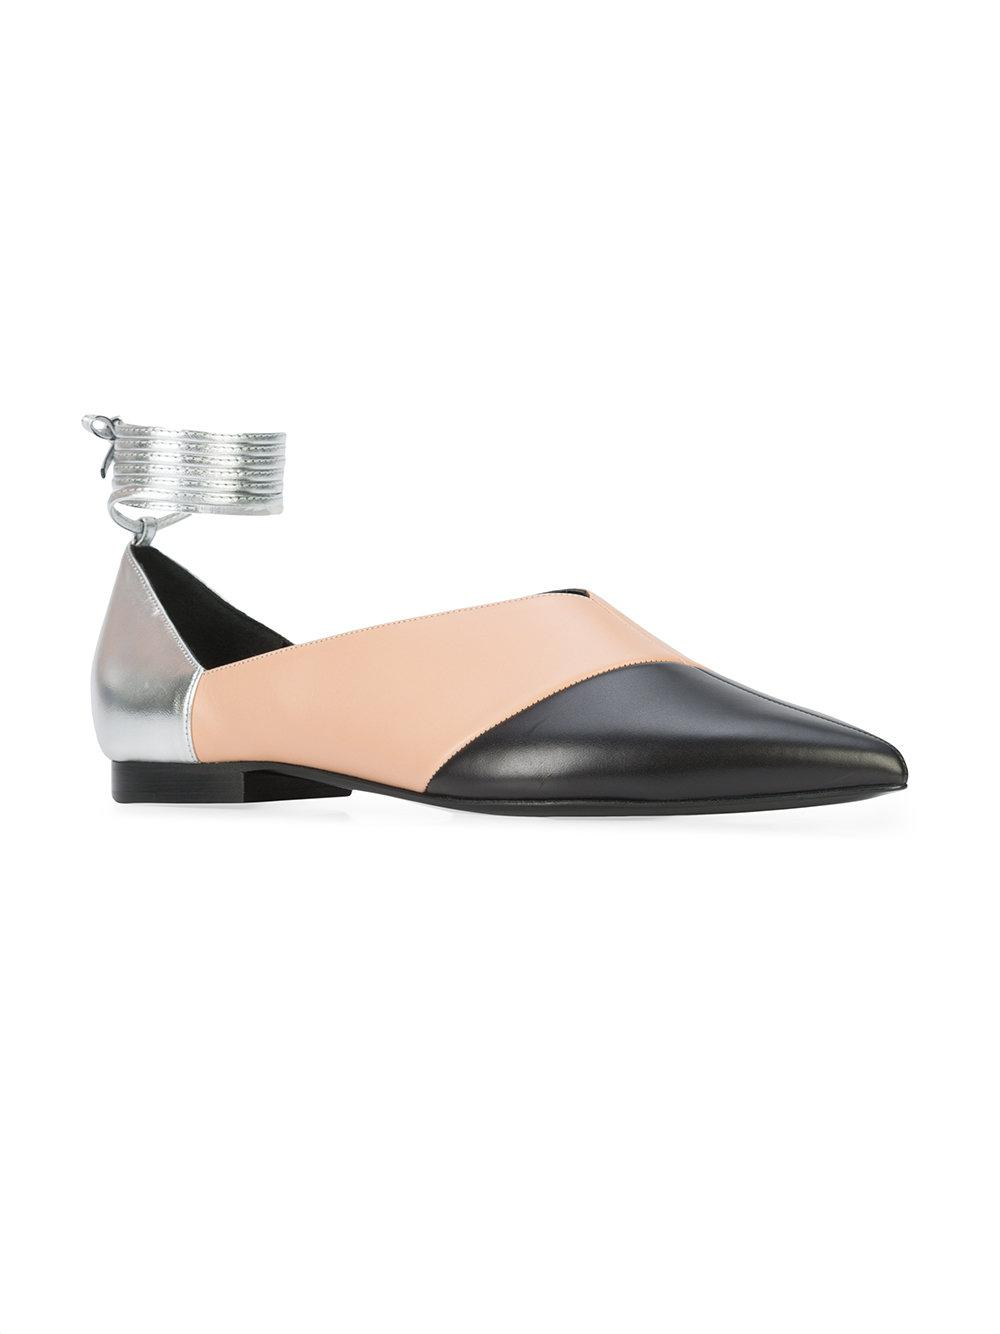 0dc282dbcfd Lyst - Pierre Hardy Colour Block Ballerina Flats in Black